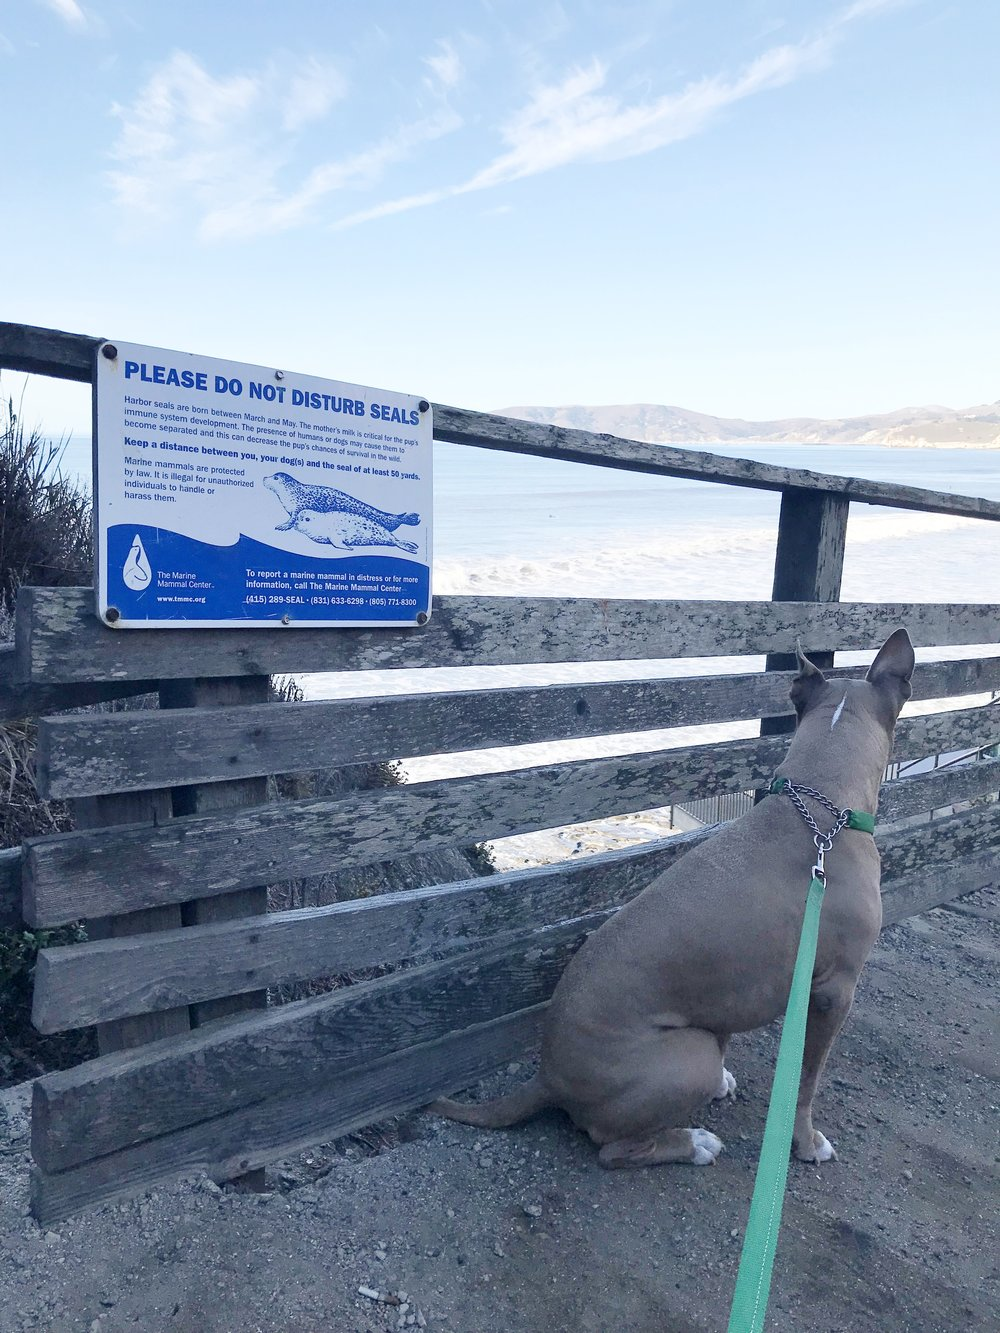 But Mom, I really WANT to disturb the seals!